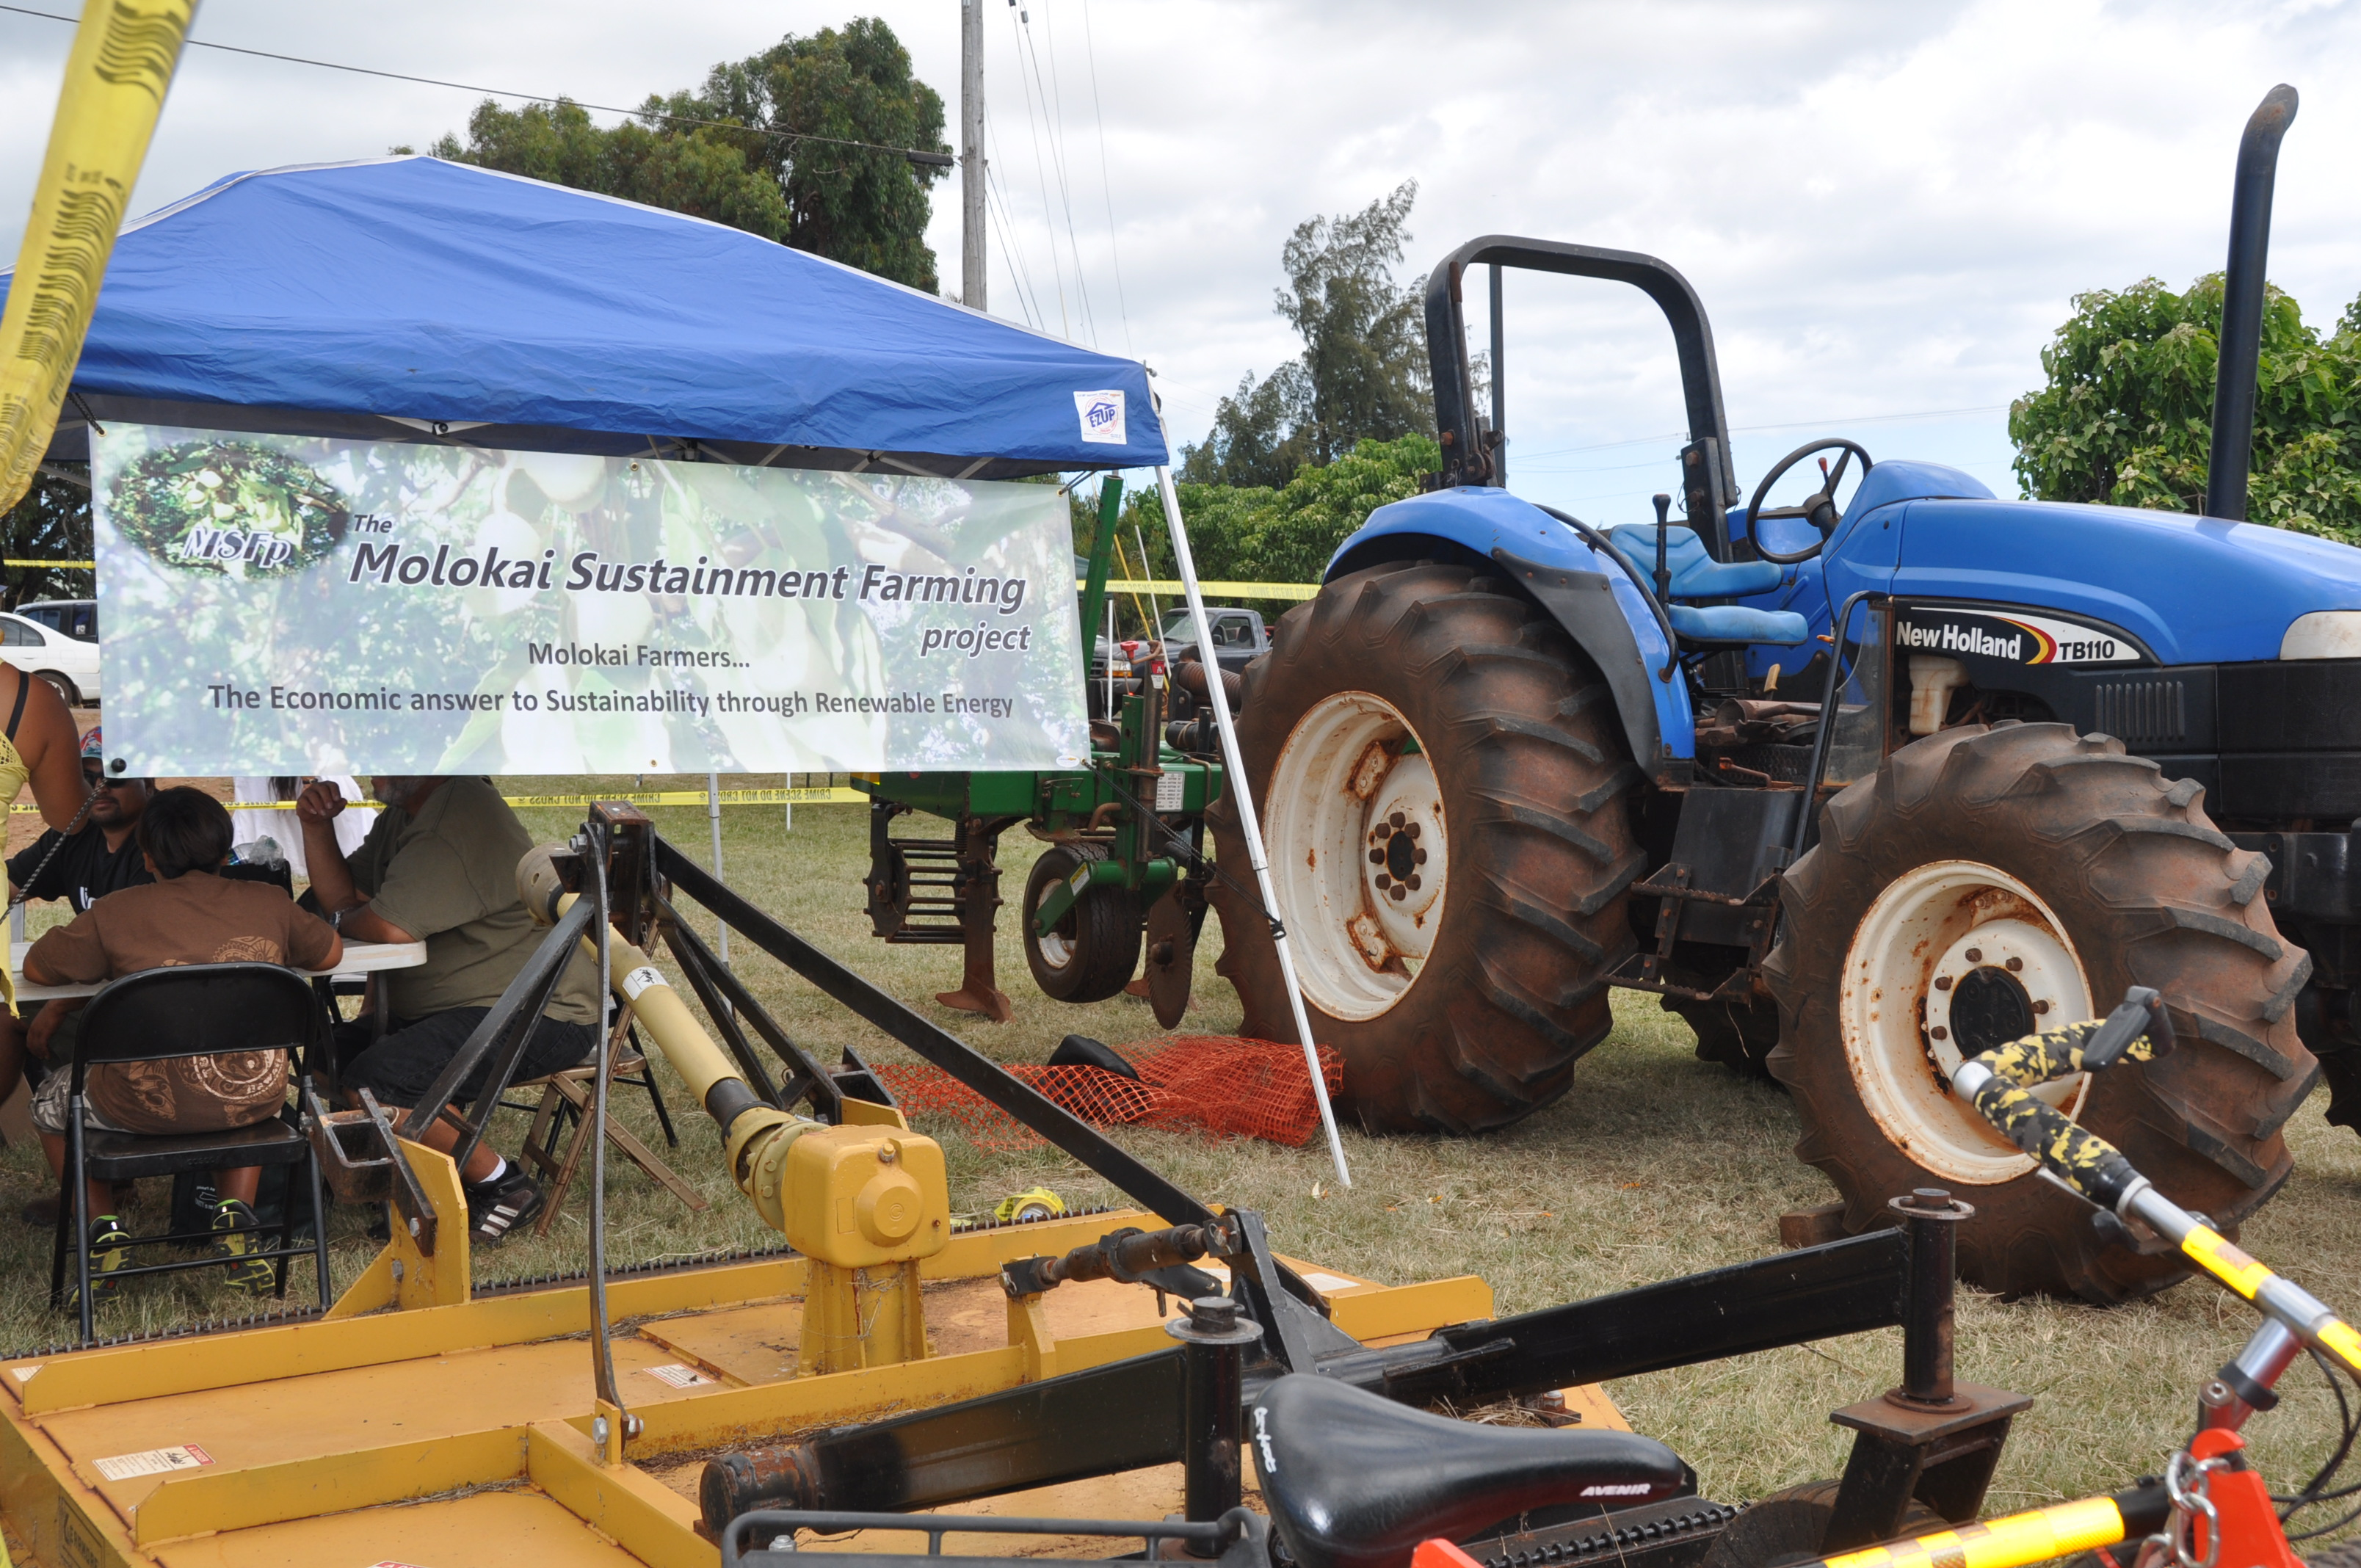 Biodiesel from kukui nuts offers key to sustainability for Molokai Sustainment Farming